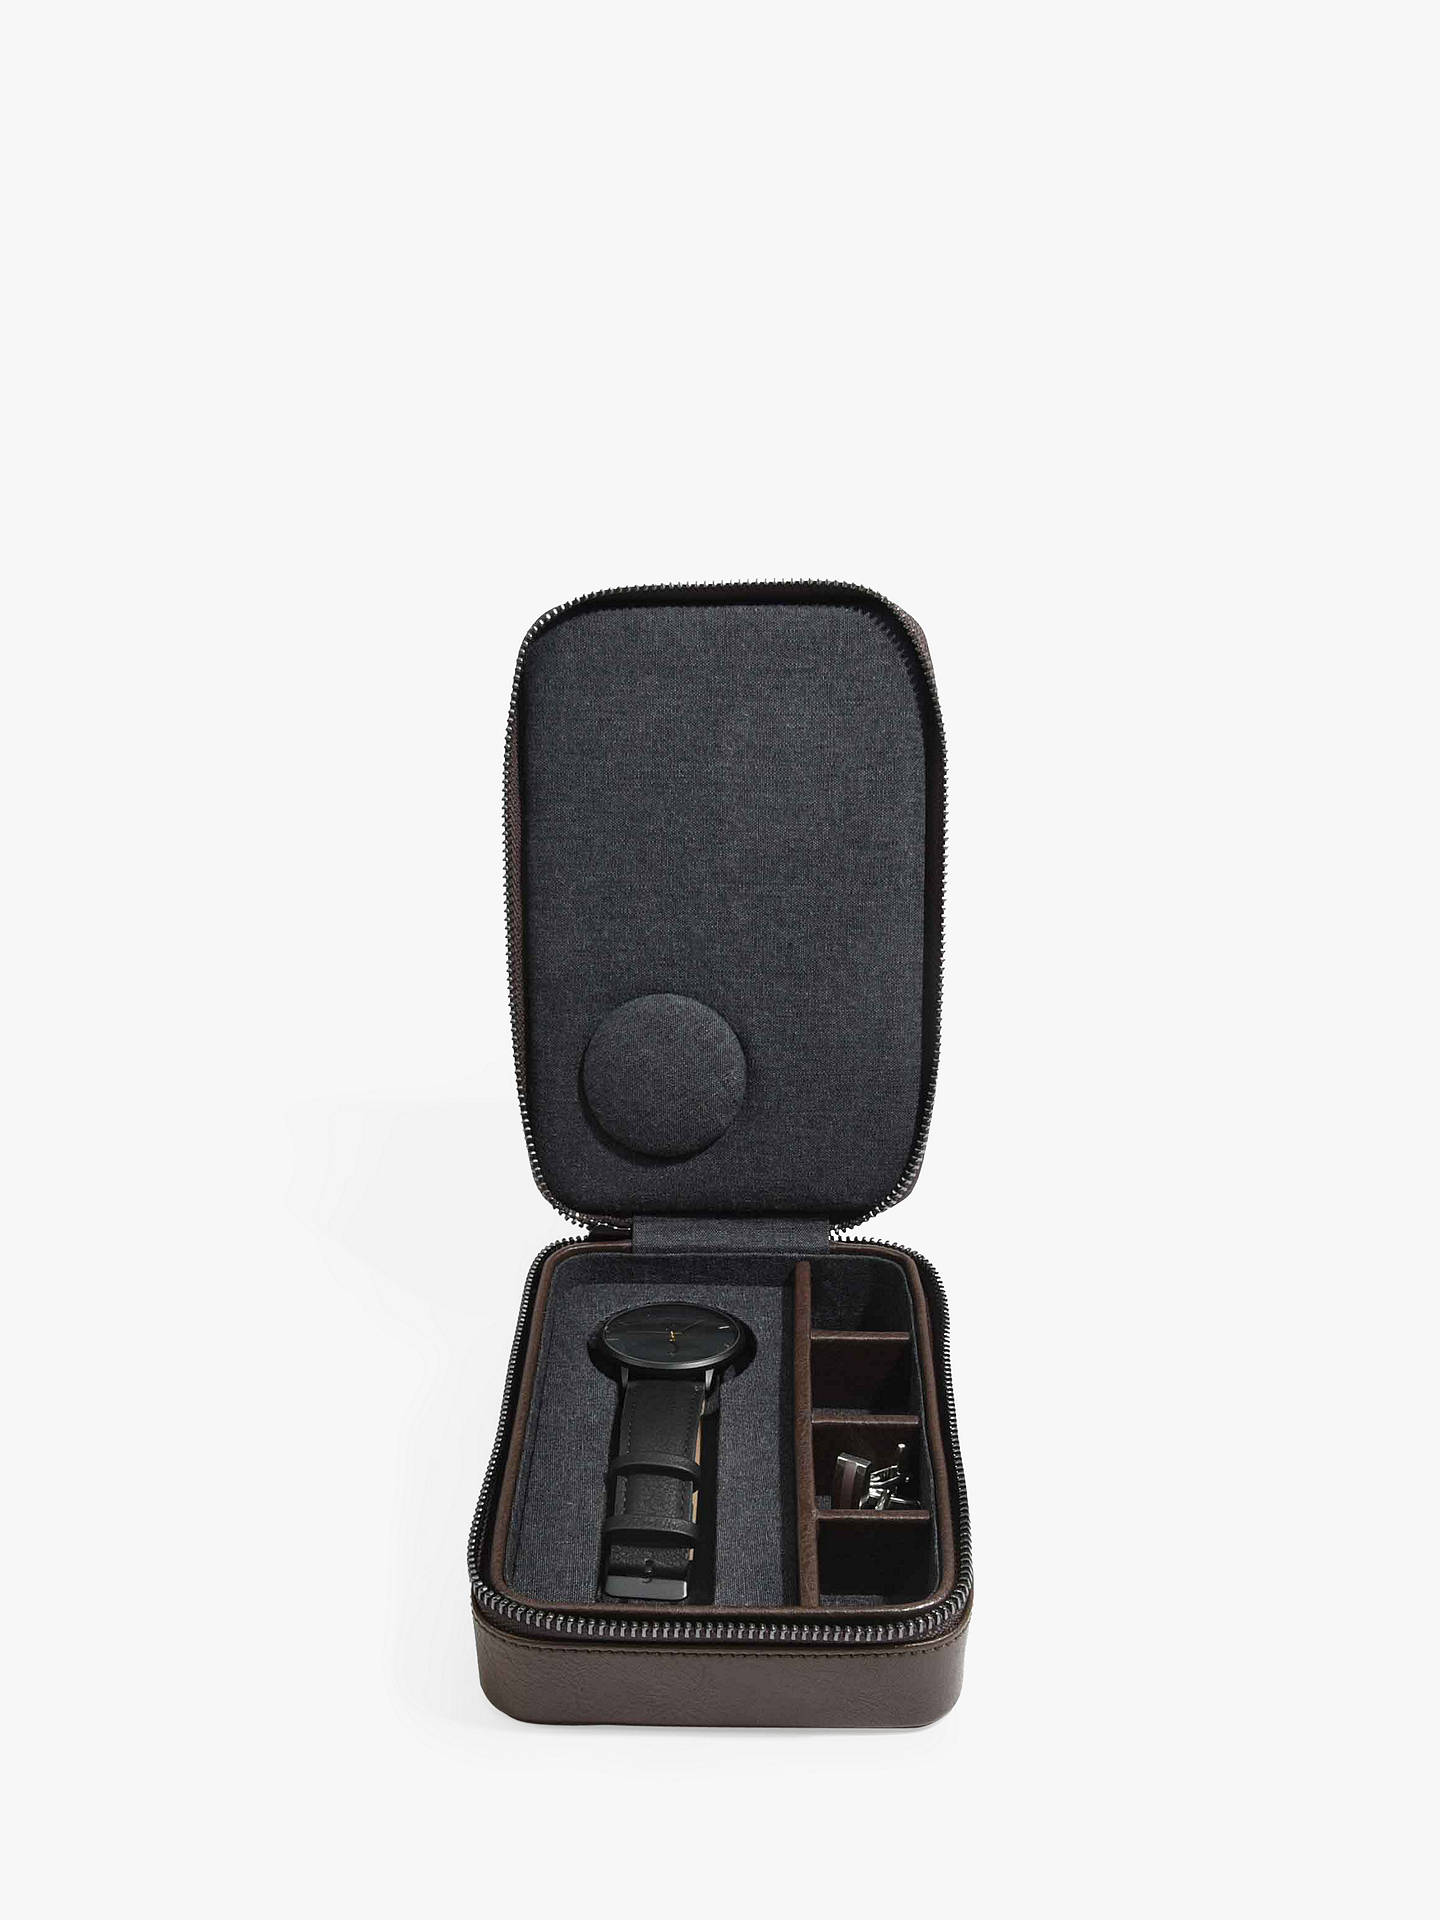 BuyStackers Watch & Cufflink Box, Brown Online at johnlewis.com